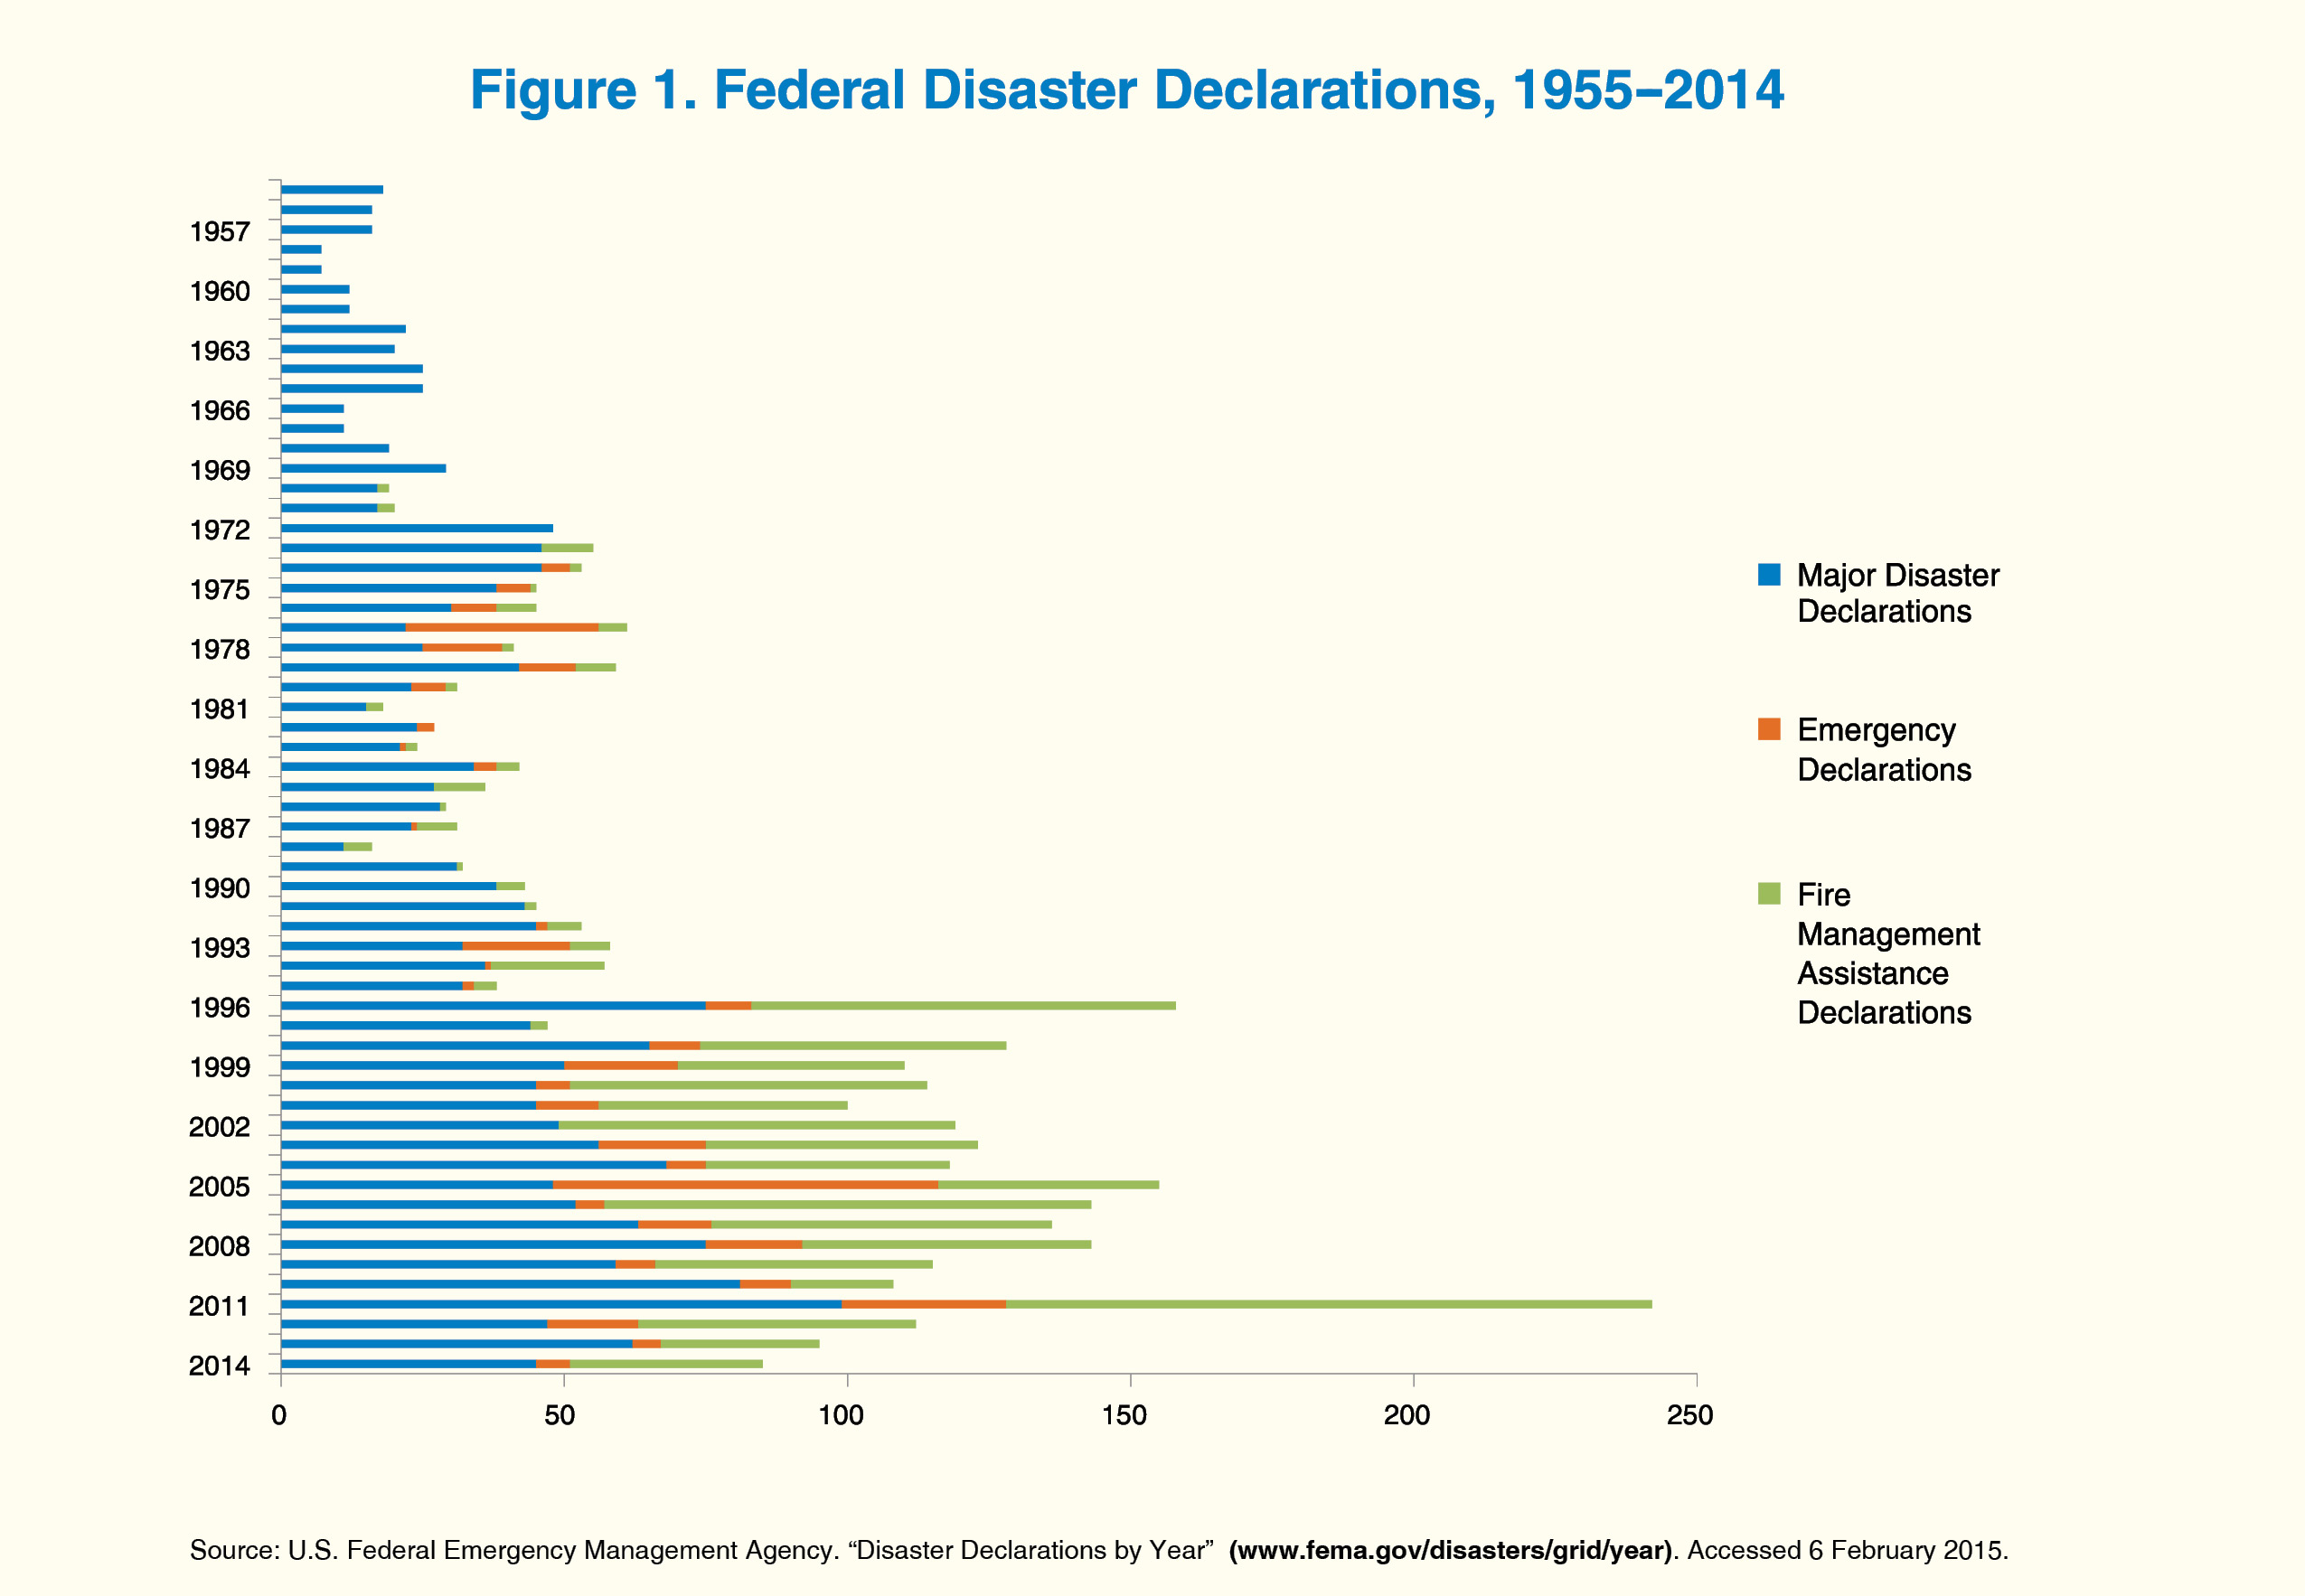 A bar chart showing number of federal disaster declarations by type for every year from 1955 to 2014.